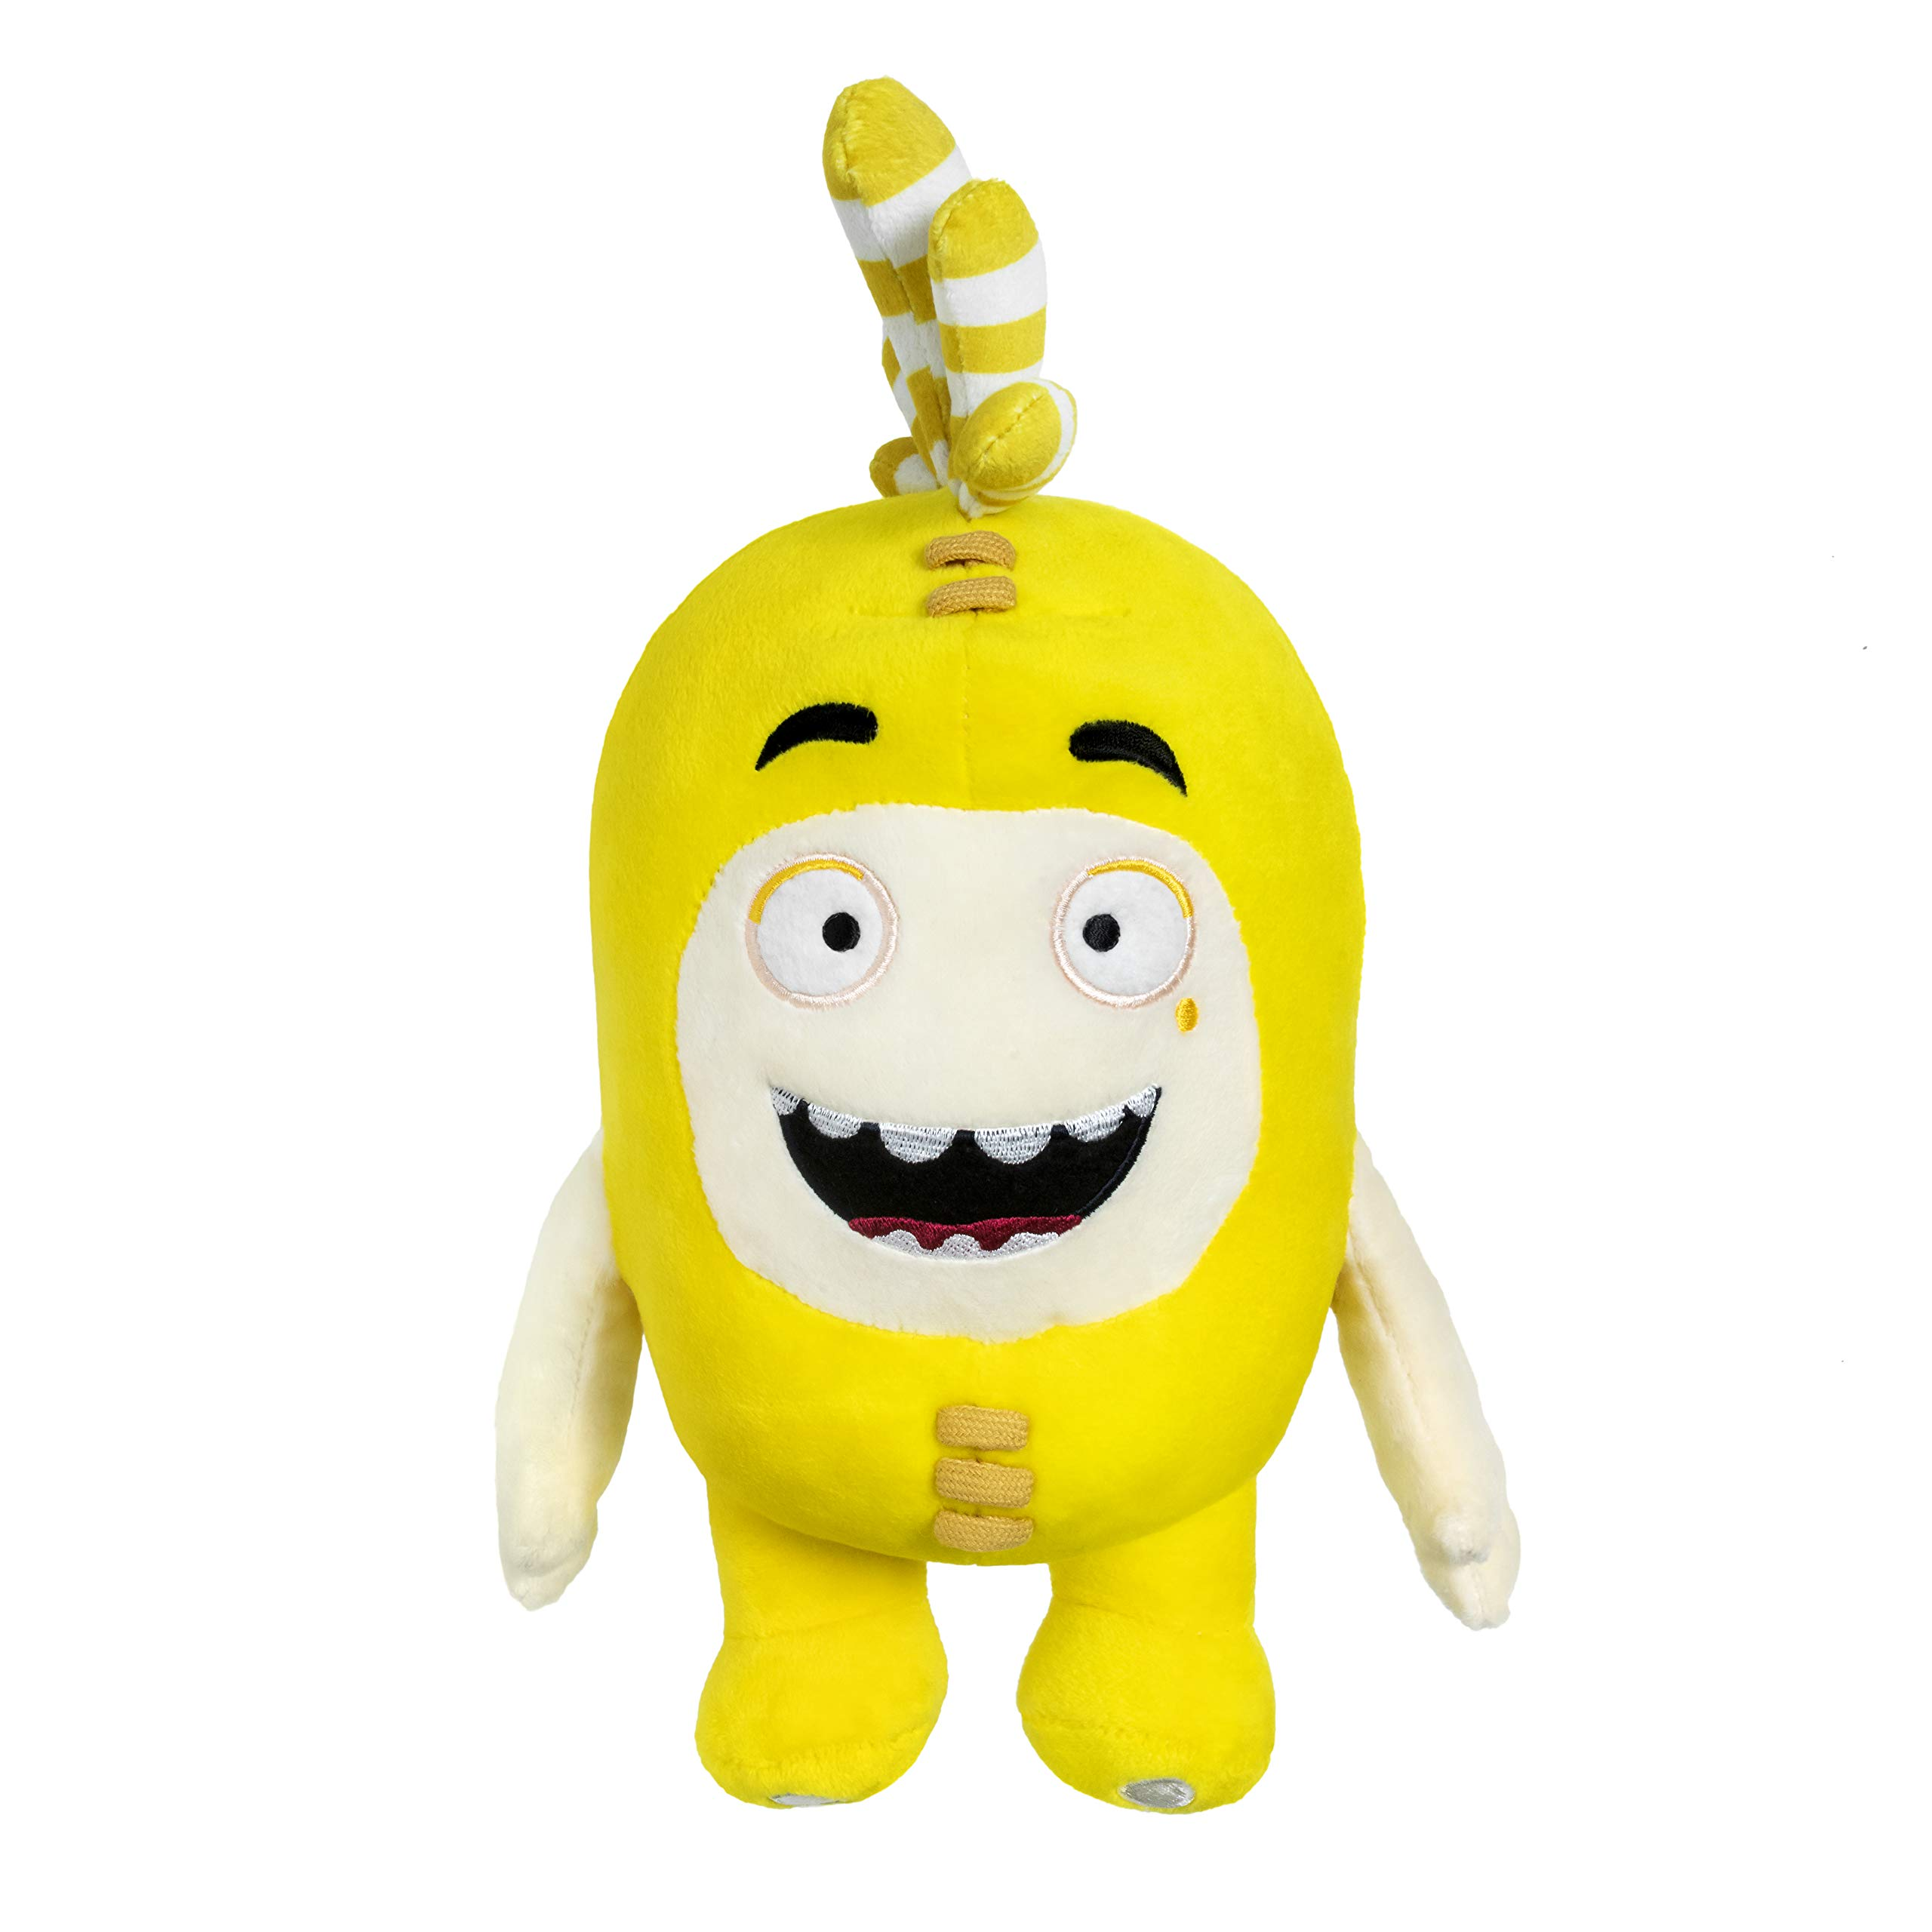 ODDBODS Bubbles Plush | 12'' Yellow Soft Toy Idea for Kids by ODDBODS